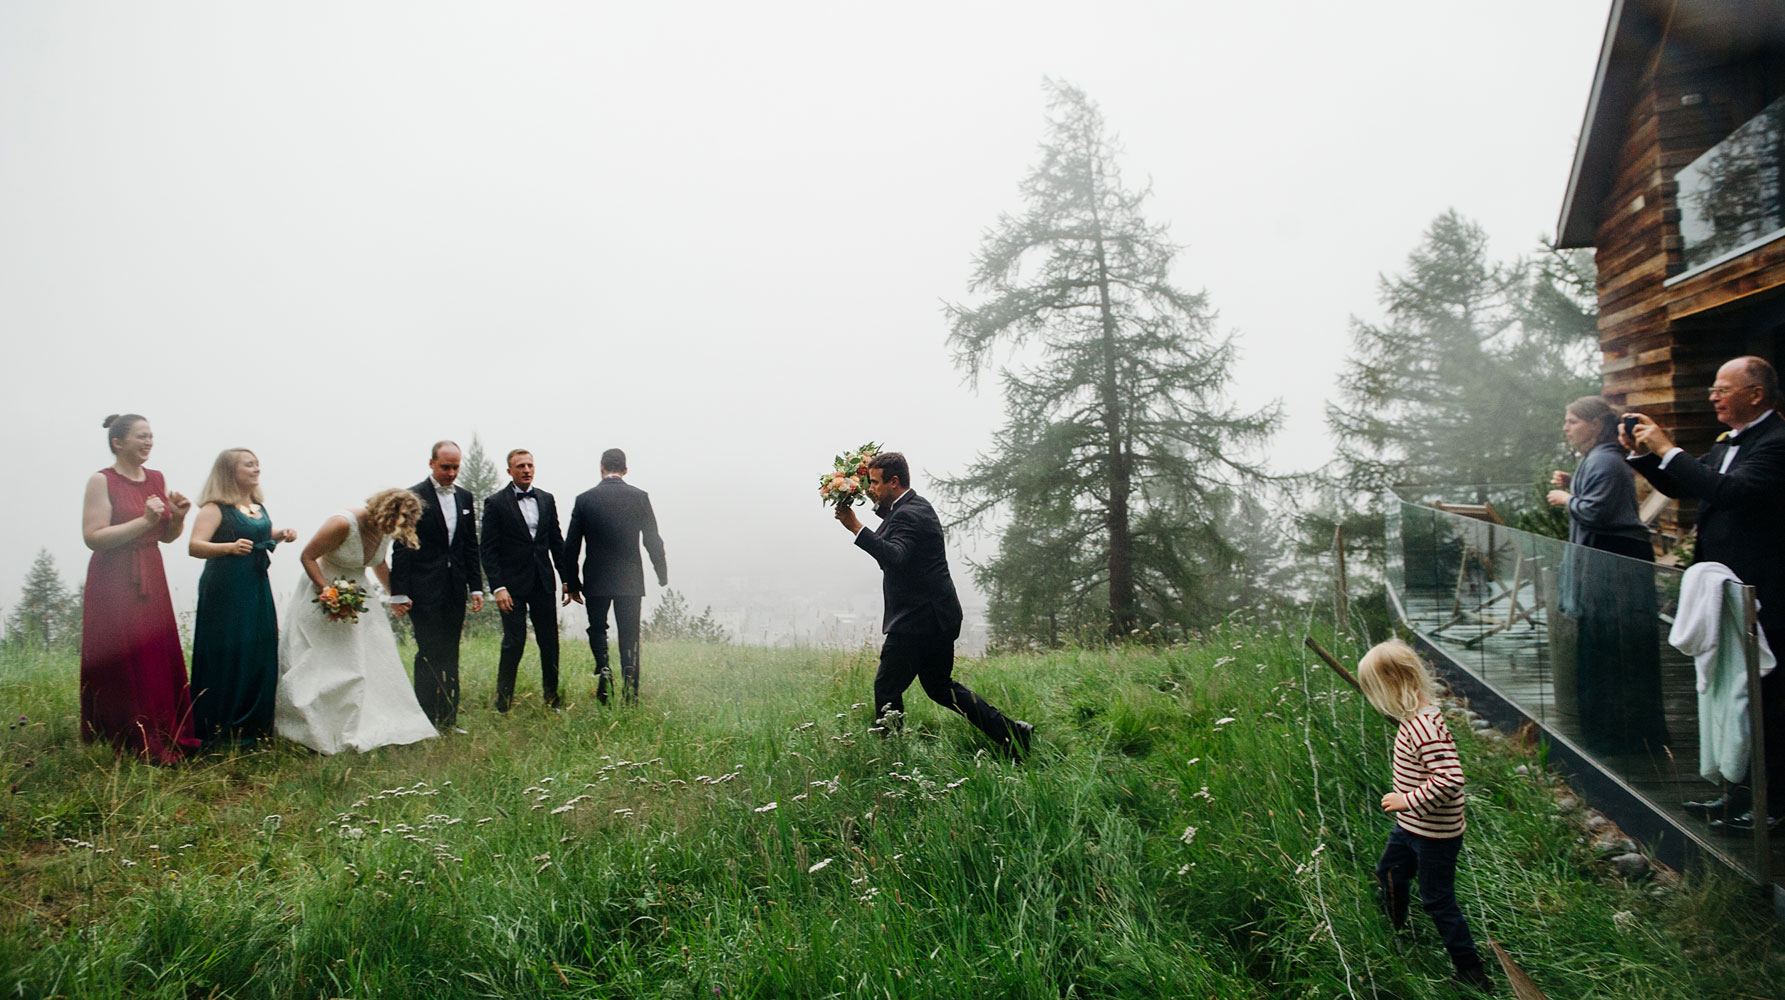 wedding_photographer_zermatt_36.jpg